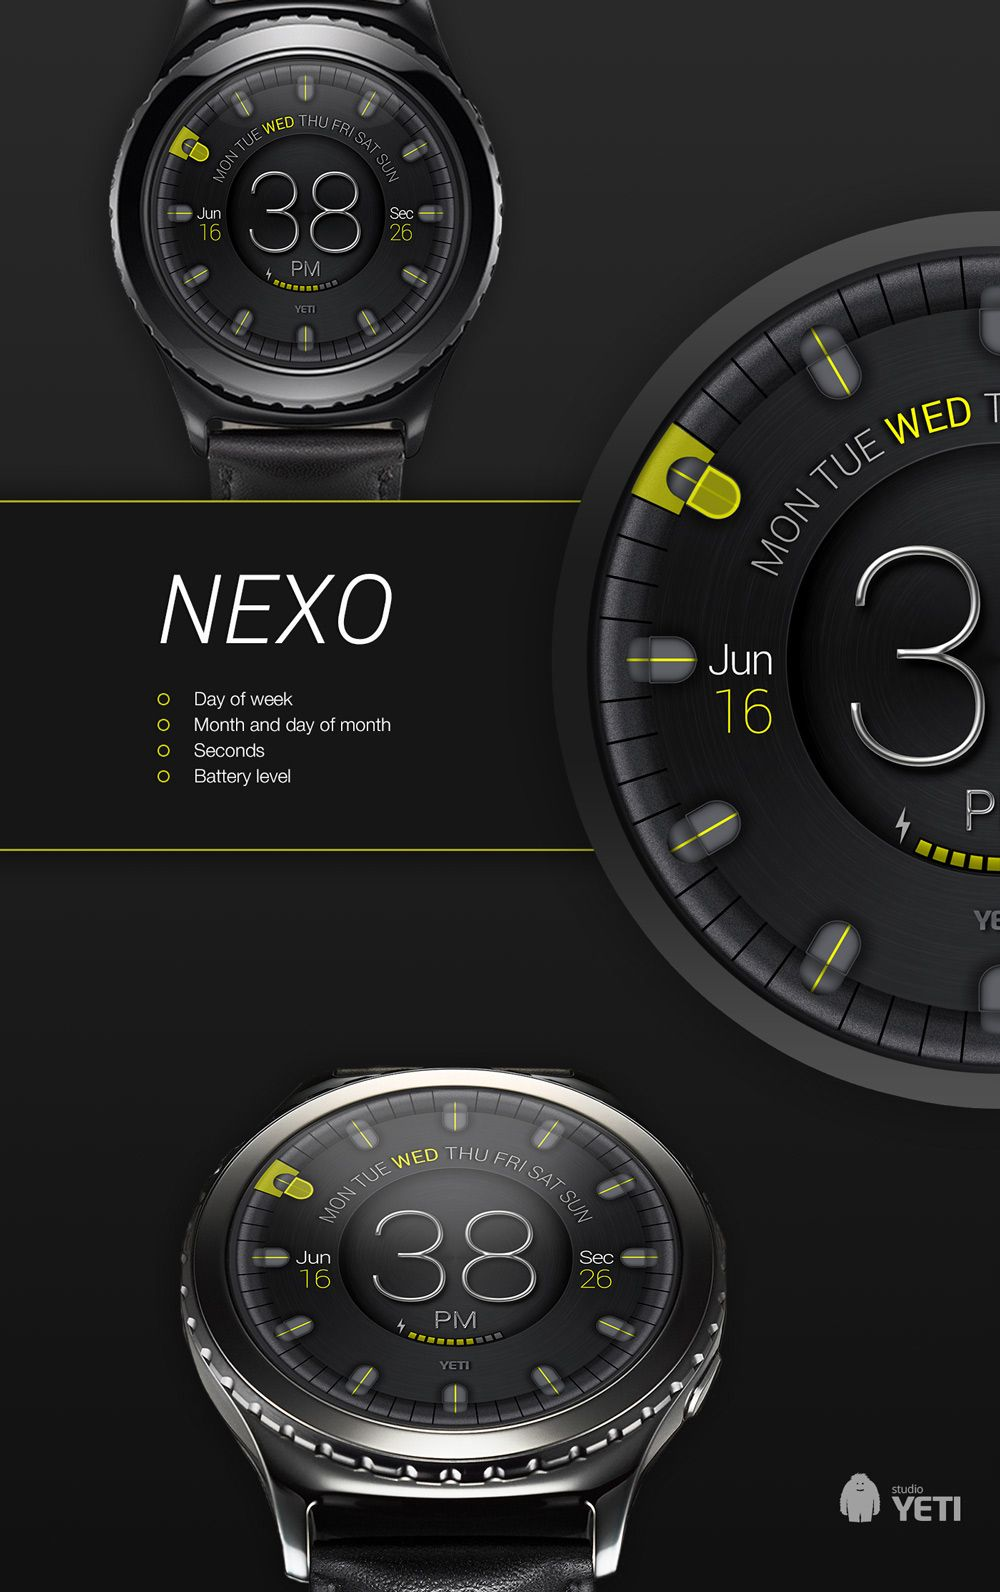 Watch Face for Tizen and Android Wear Watch faces